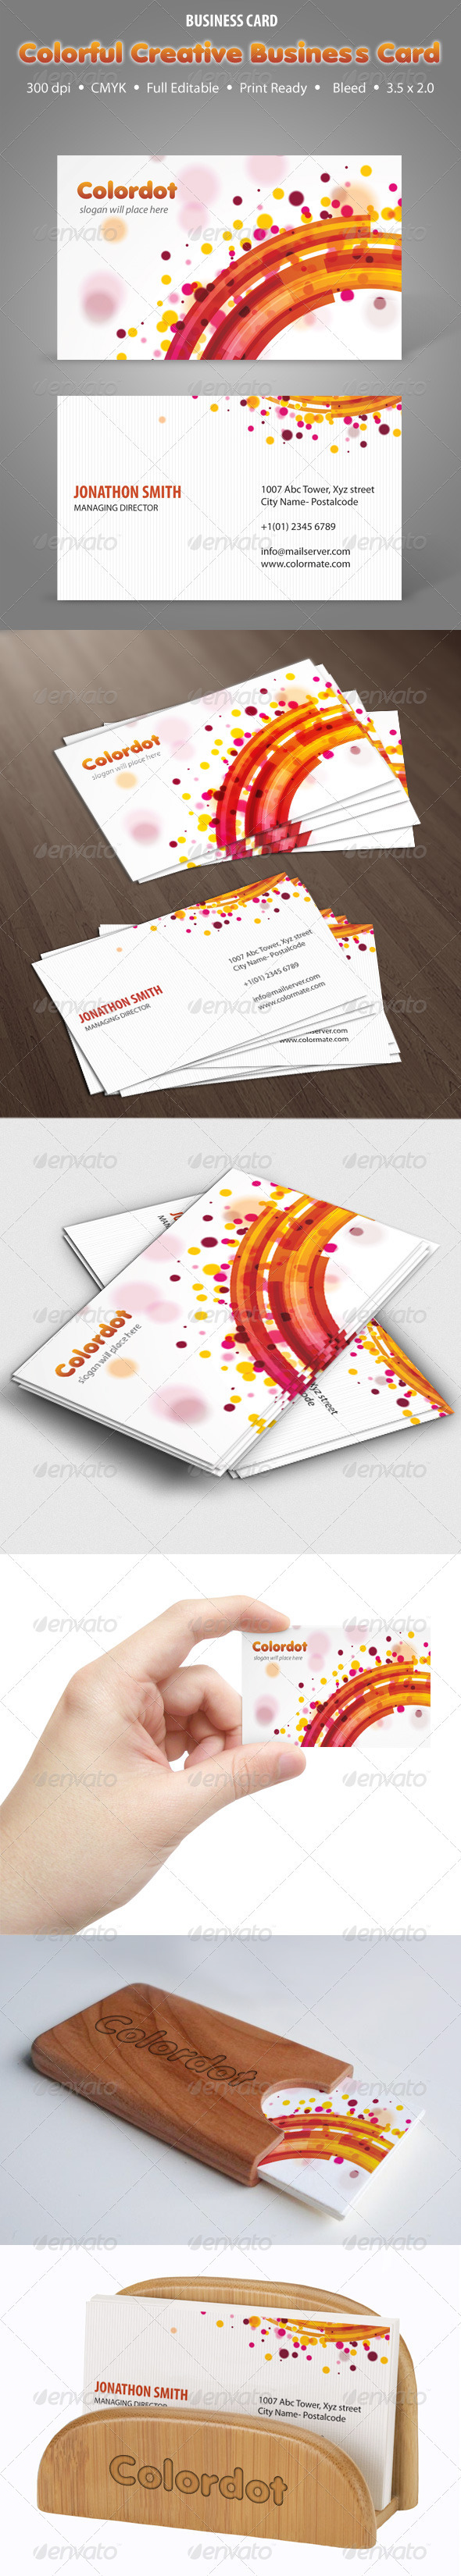 Colordot Creative Business Card - Creative Business Cards